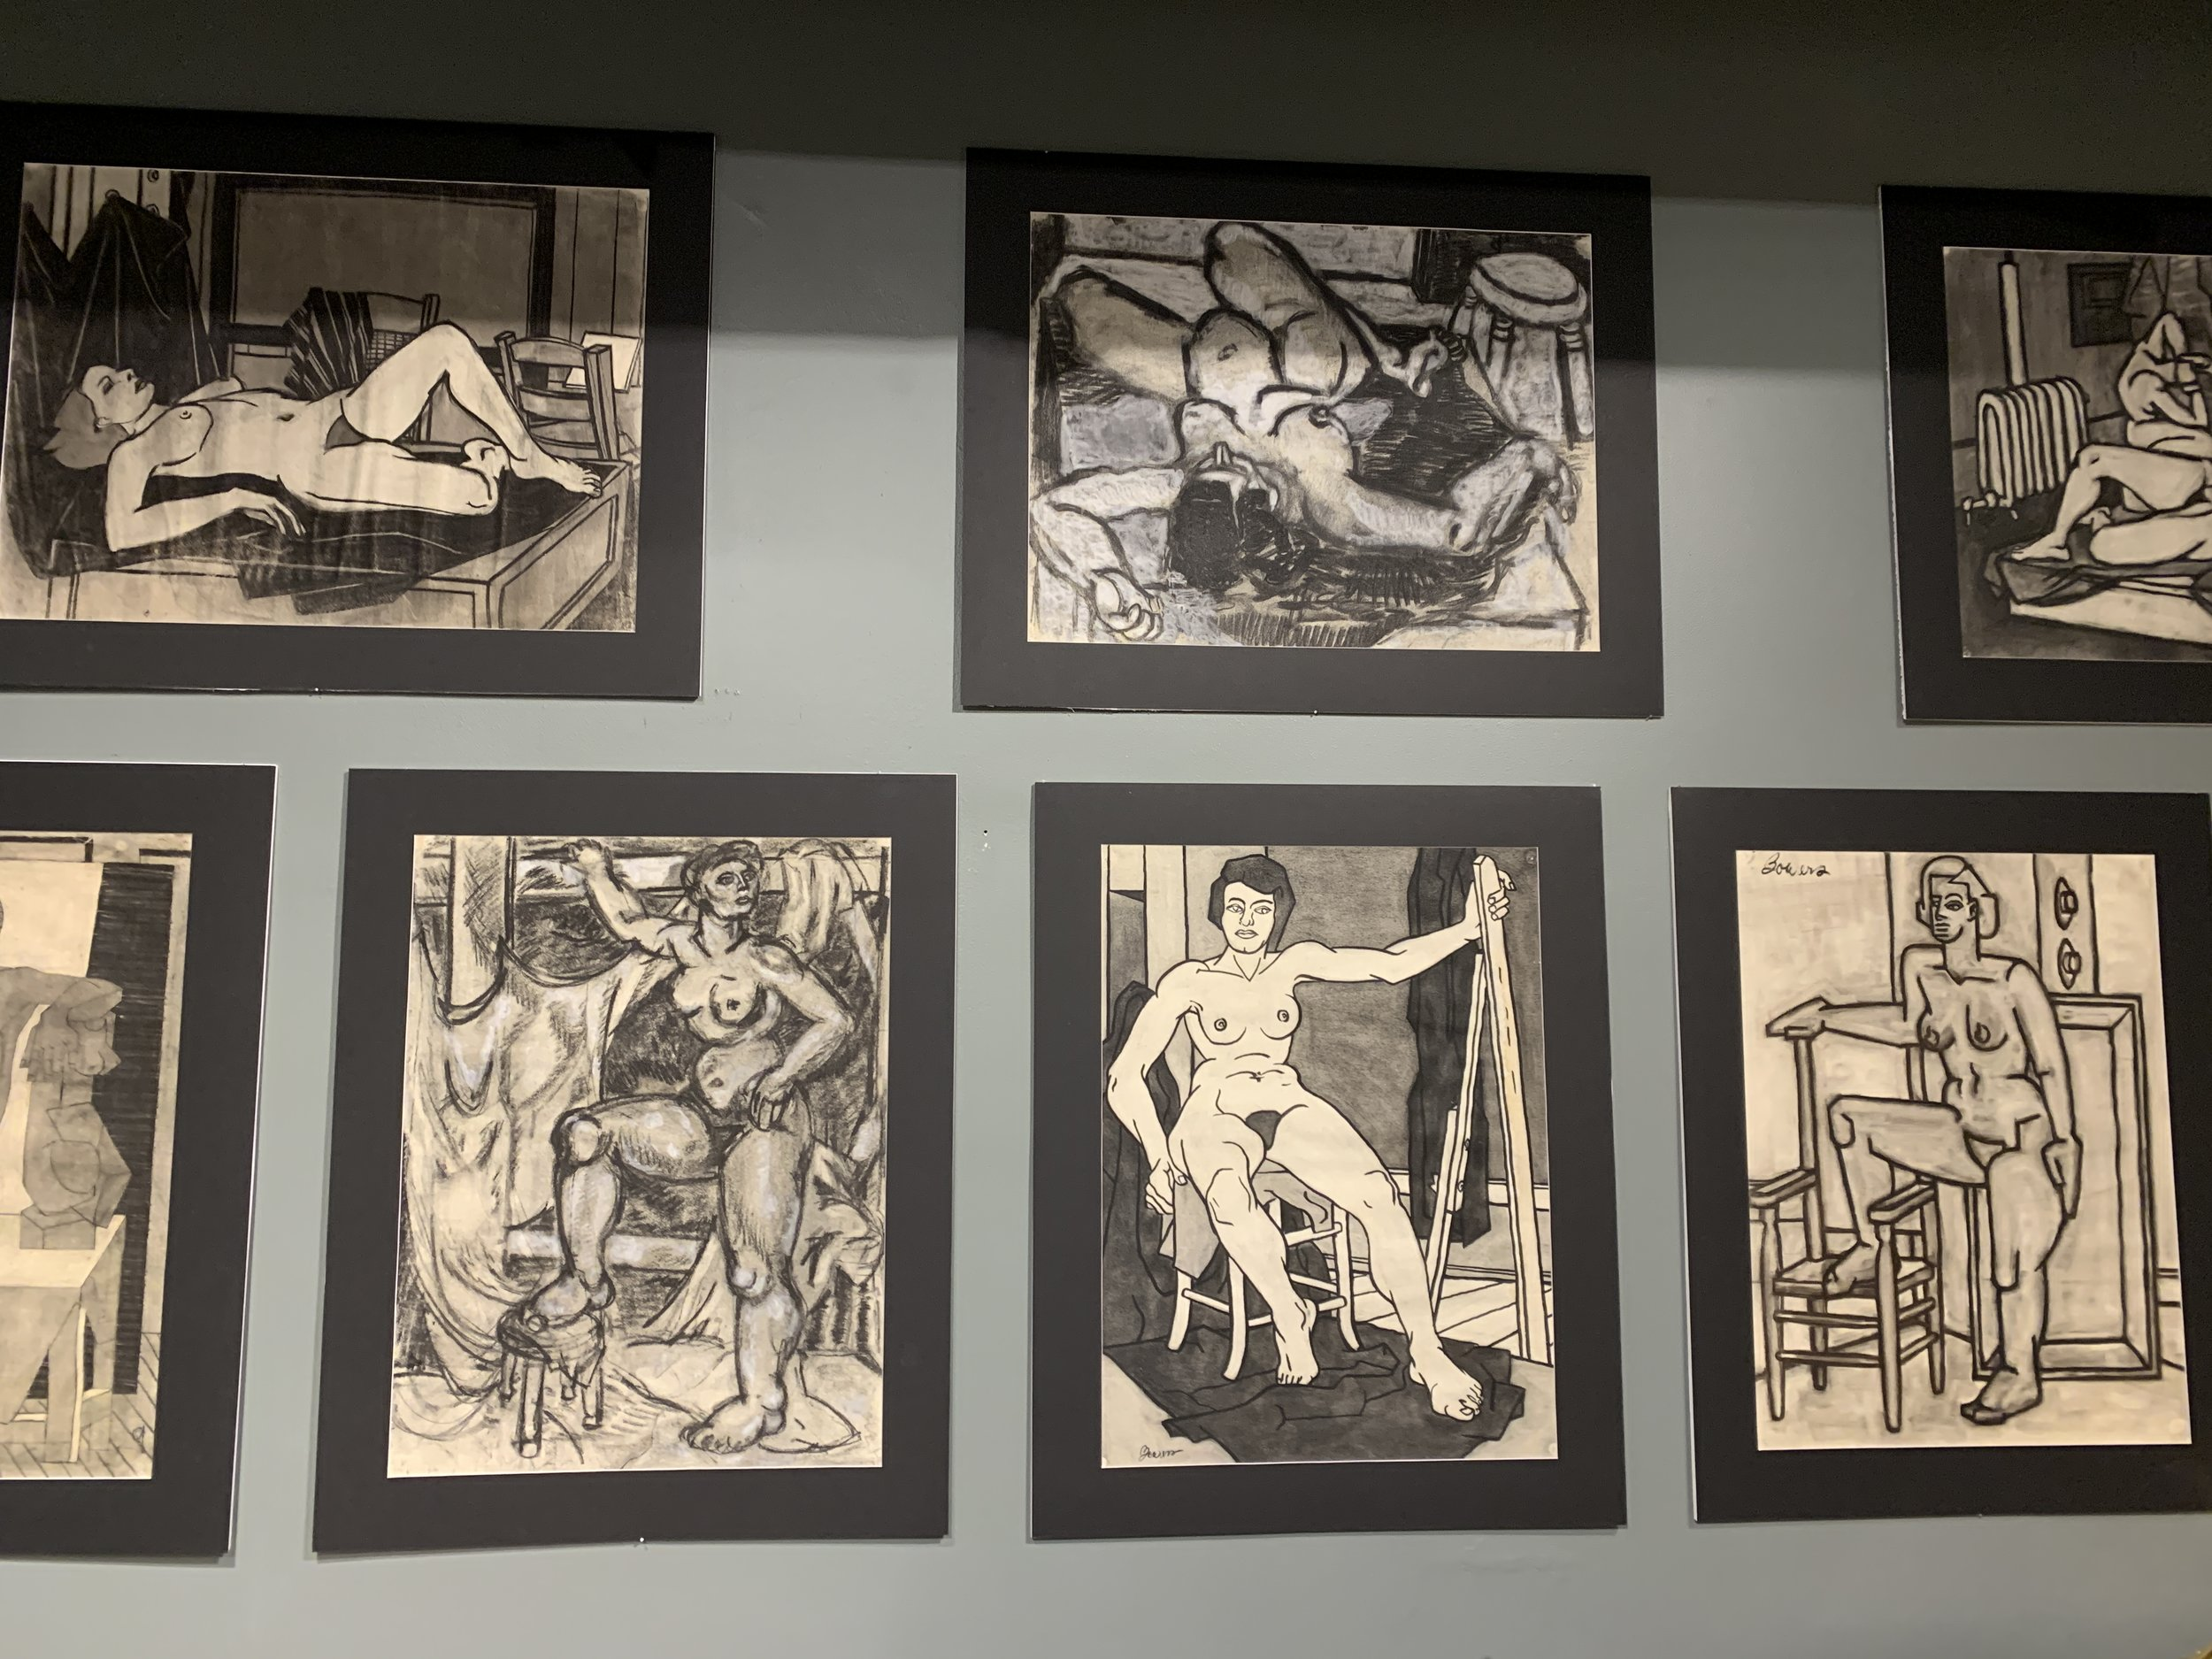 John Bowers - This collection of 1930-40s nudes came from a portfolio by artist John Bowers. John Bowers studied art at UC Berkeley under Margaret Peterson. His personal collection included works by Margaret Peterson, Jay De Feo and Roland Petersen.Now on view at the showroom of Guy Regal NYC at theNew York Design Center, 200 Lexington Ave, NY